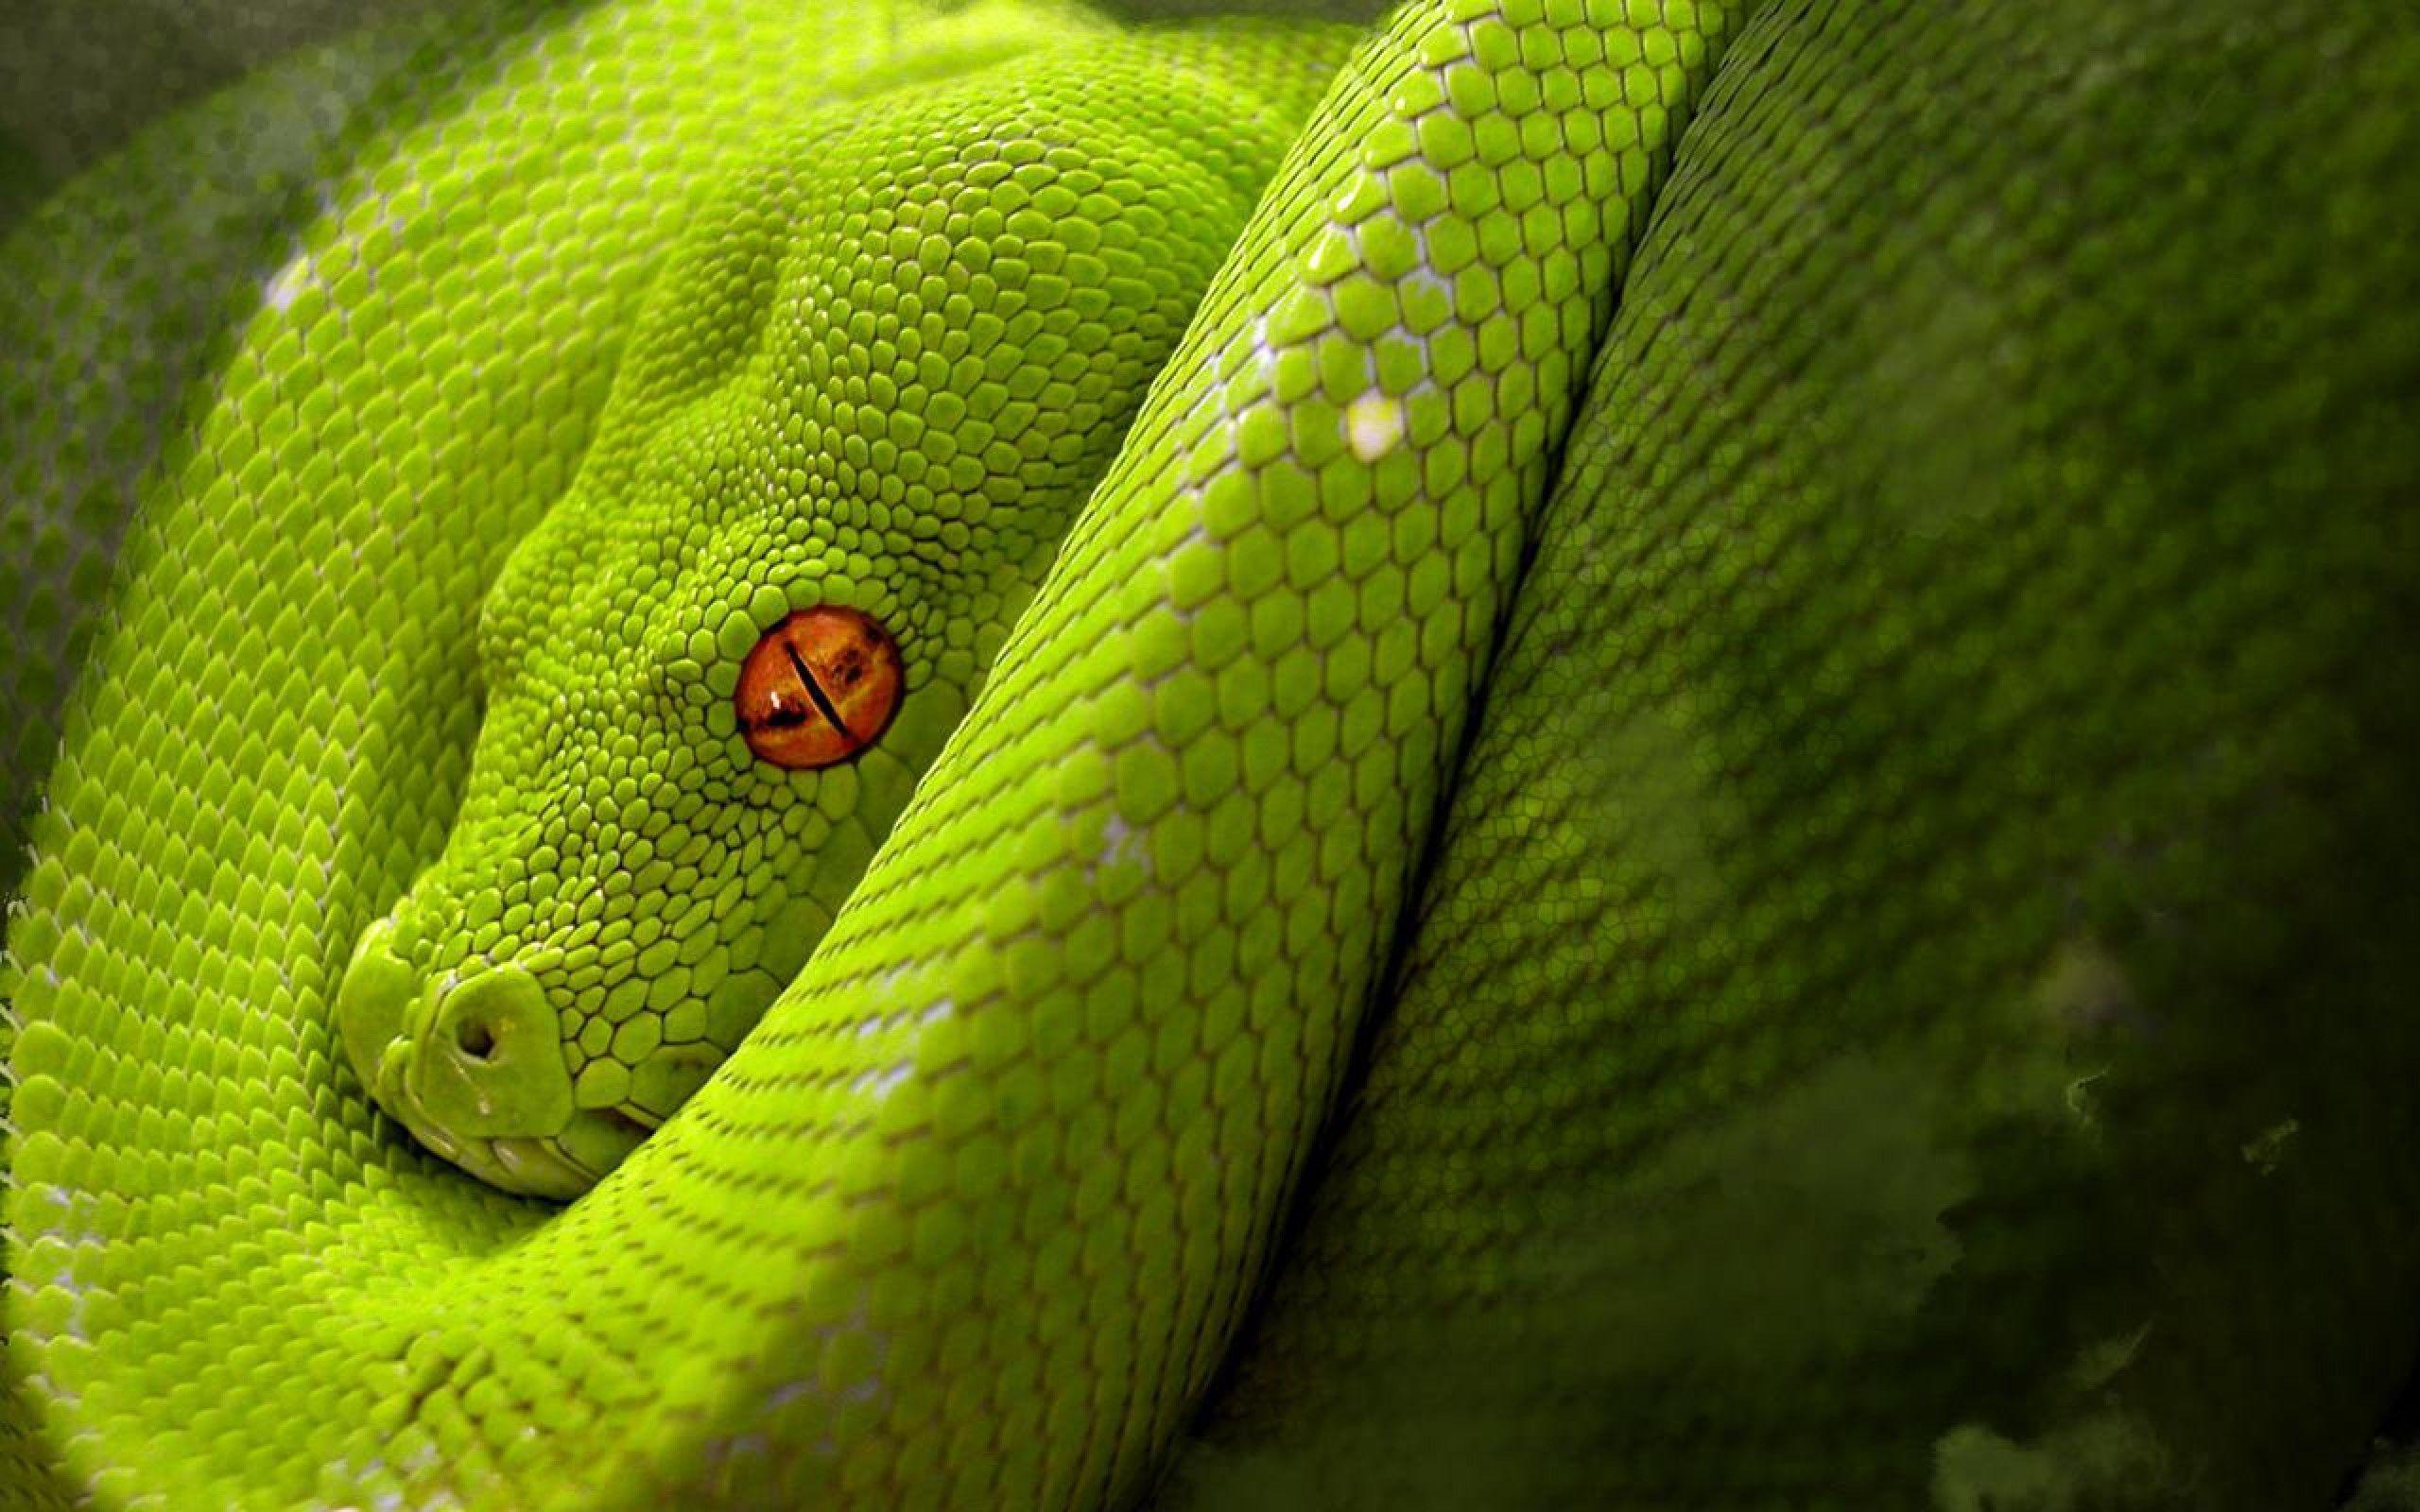 the snake wallpapers - photo #44